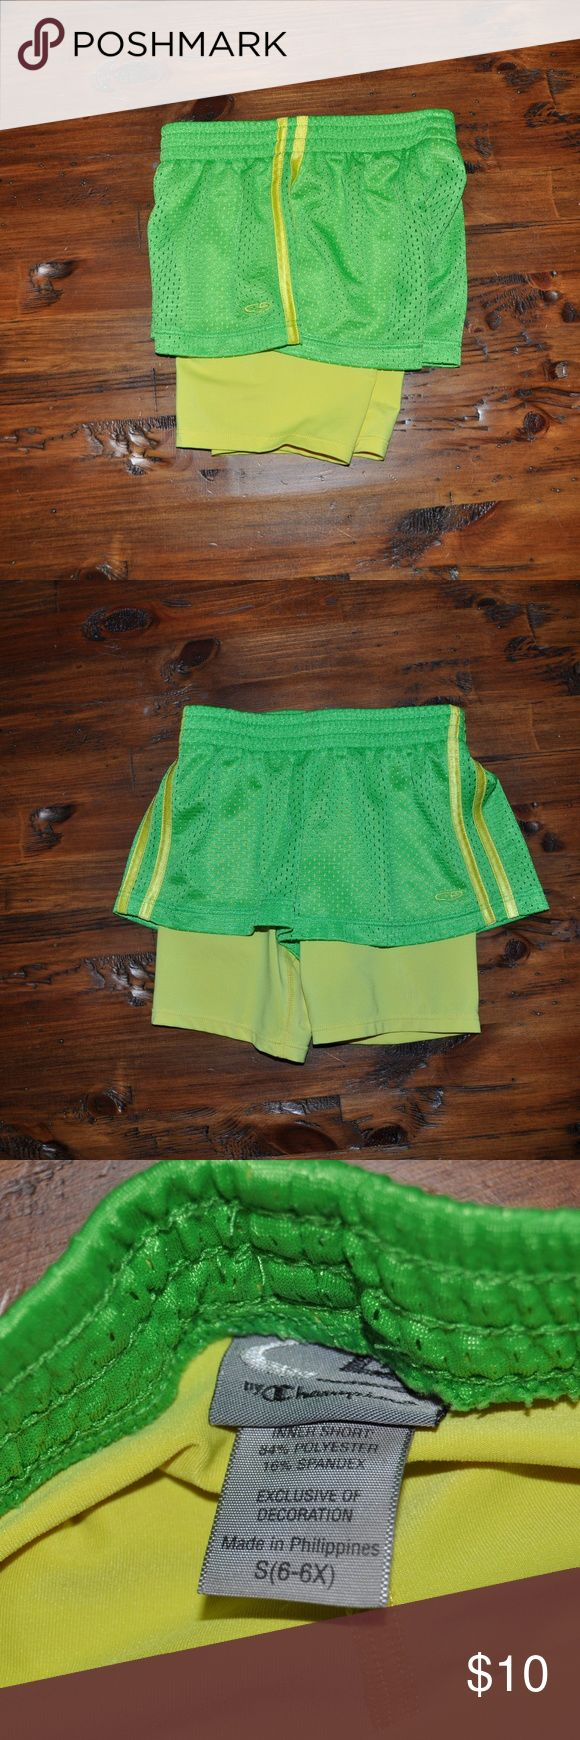 CHAMPION Girl's Green 2 in 1 Mesh Running Shorts The Girls' Performance 2in1 Woven Short from C9 Champion® provides active coverage with a fitted stretch inner short under a woven outer short. Breathable fabric with wicking technology helps keeps you cool while a wide waistband provides stylish comfort.  size S (6/6X) color: green | yellow condition: excellent  Semi-fitted Duo Dry+™ technology wicks moisture & dries fast Durable shrink resistant fabric stands up to repeated washing…